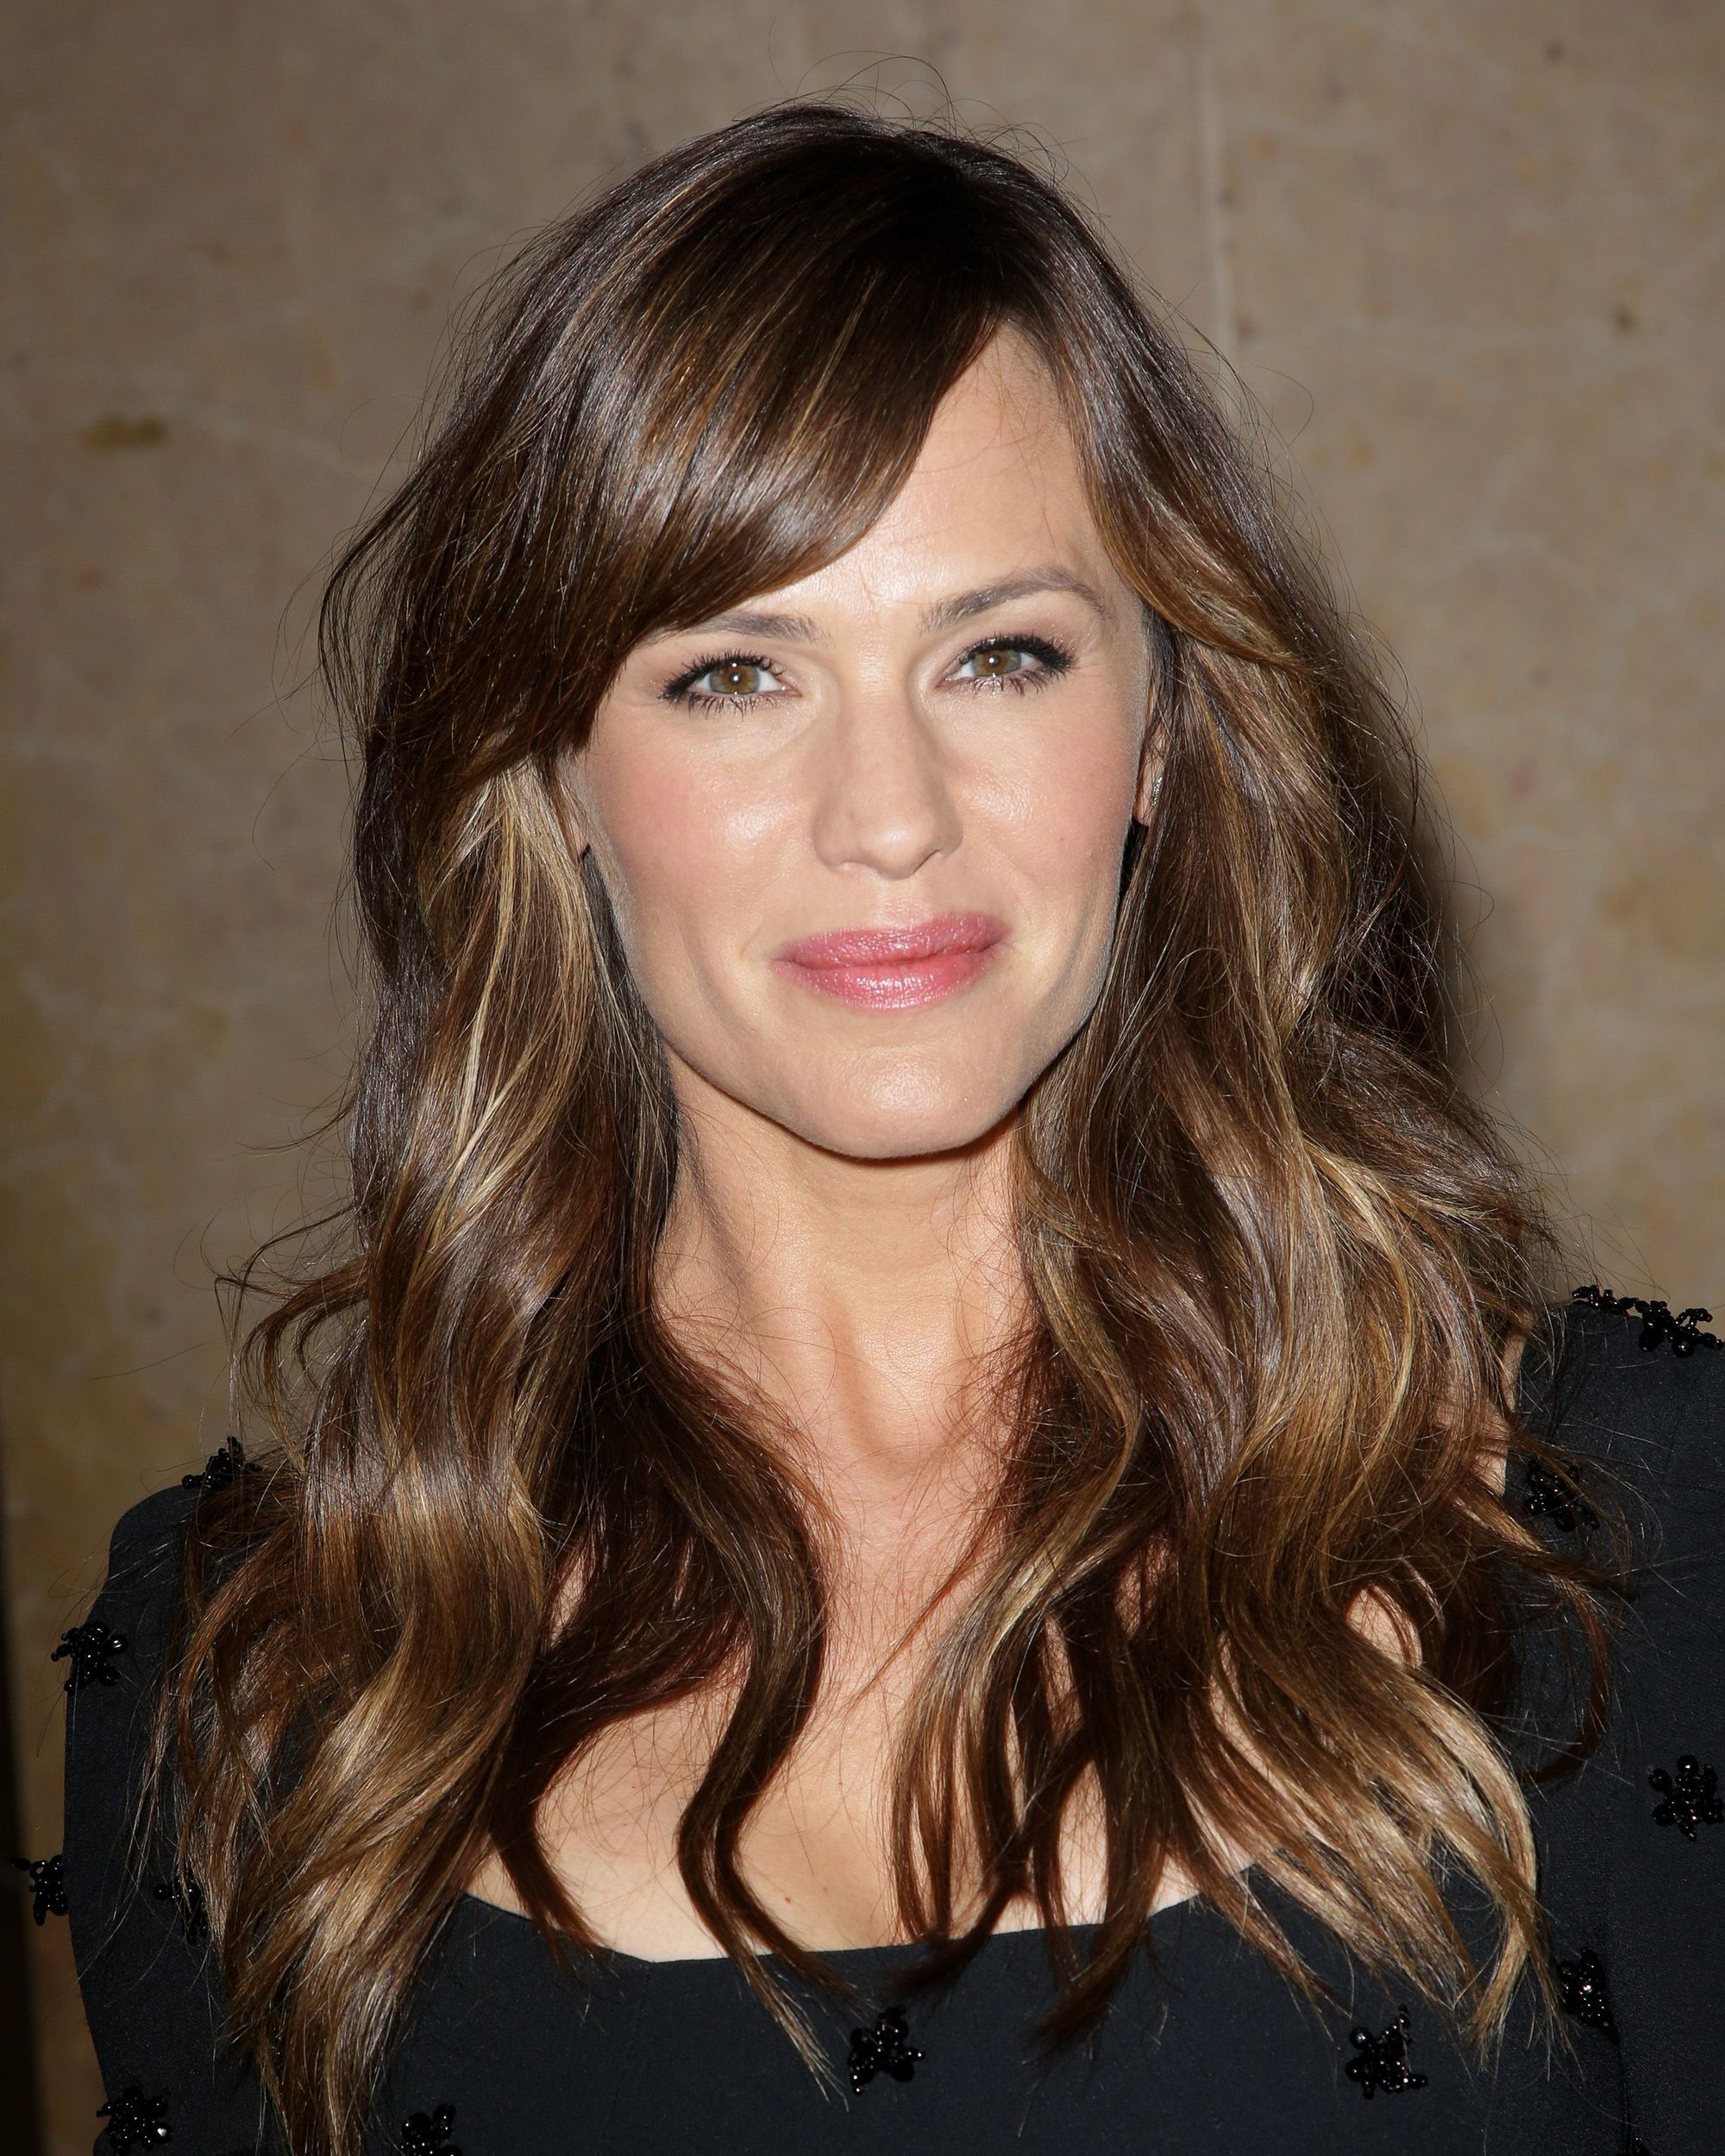 actress jennifer garner with long curly brunette hair and side bangs